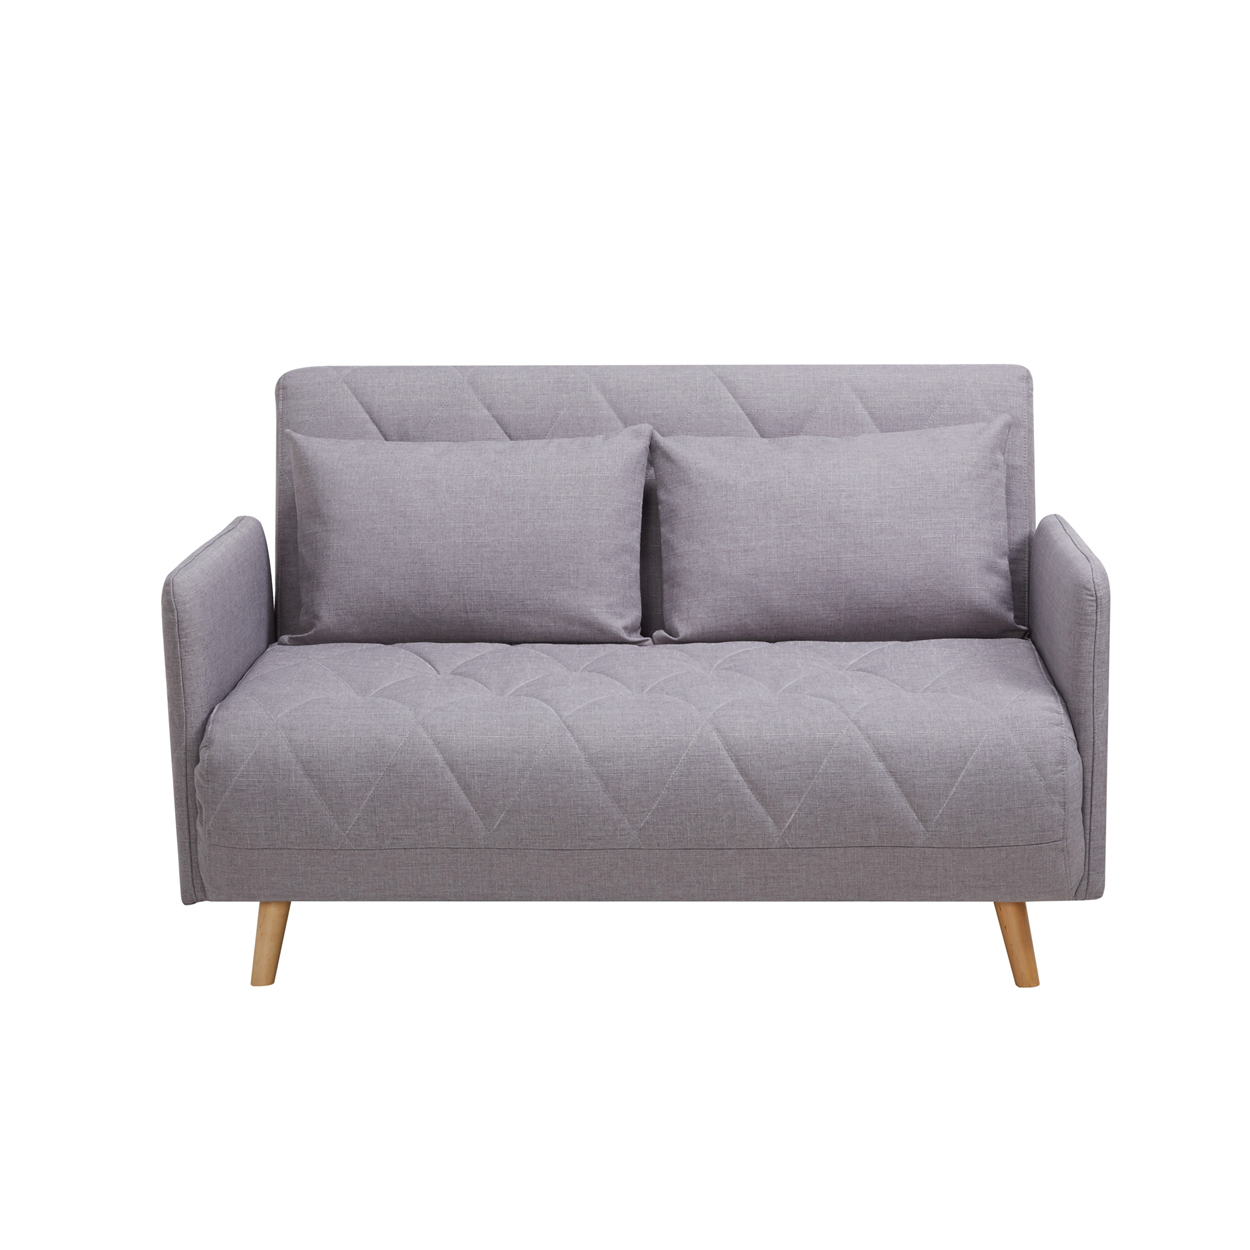 Arrived: Stellen 2-Seater Sofabed (Light Gray)